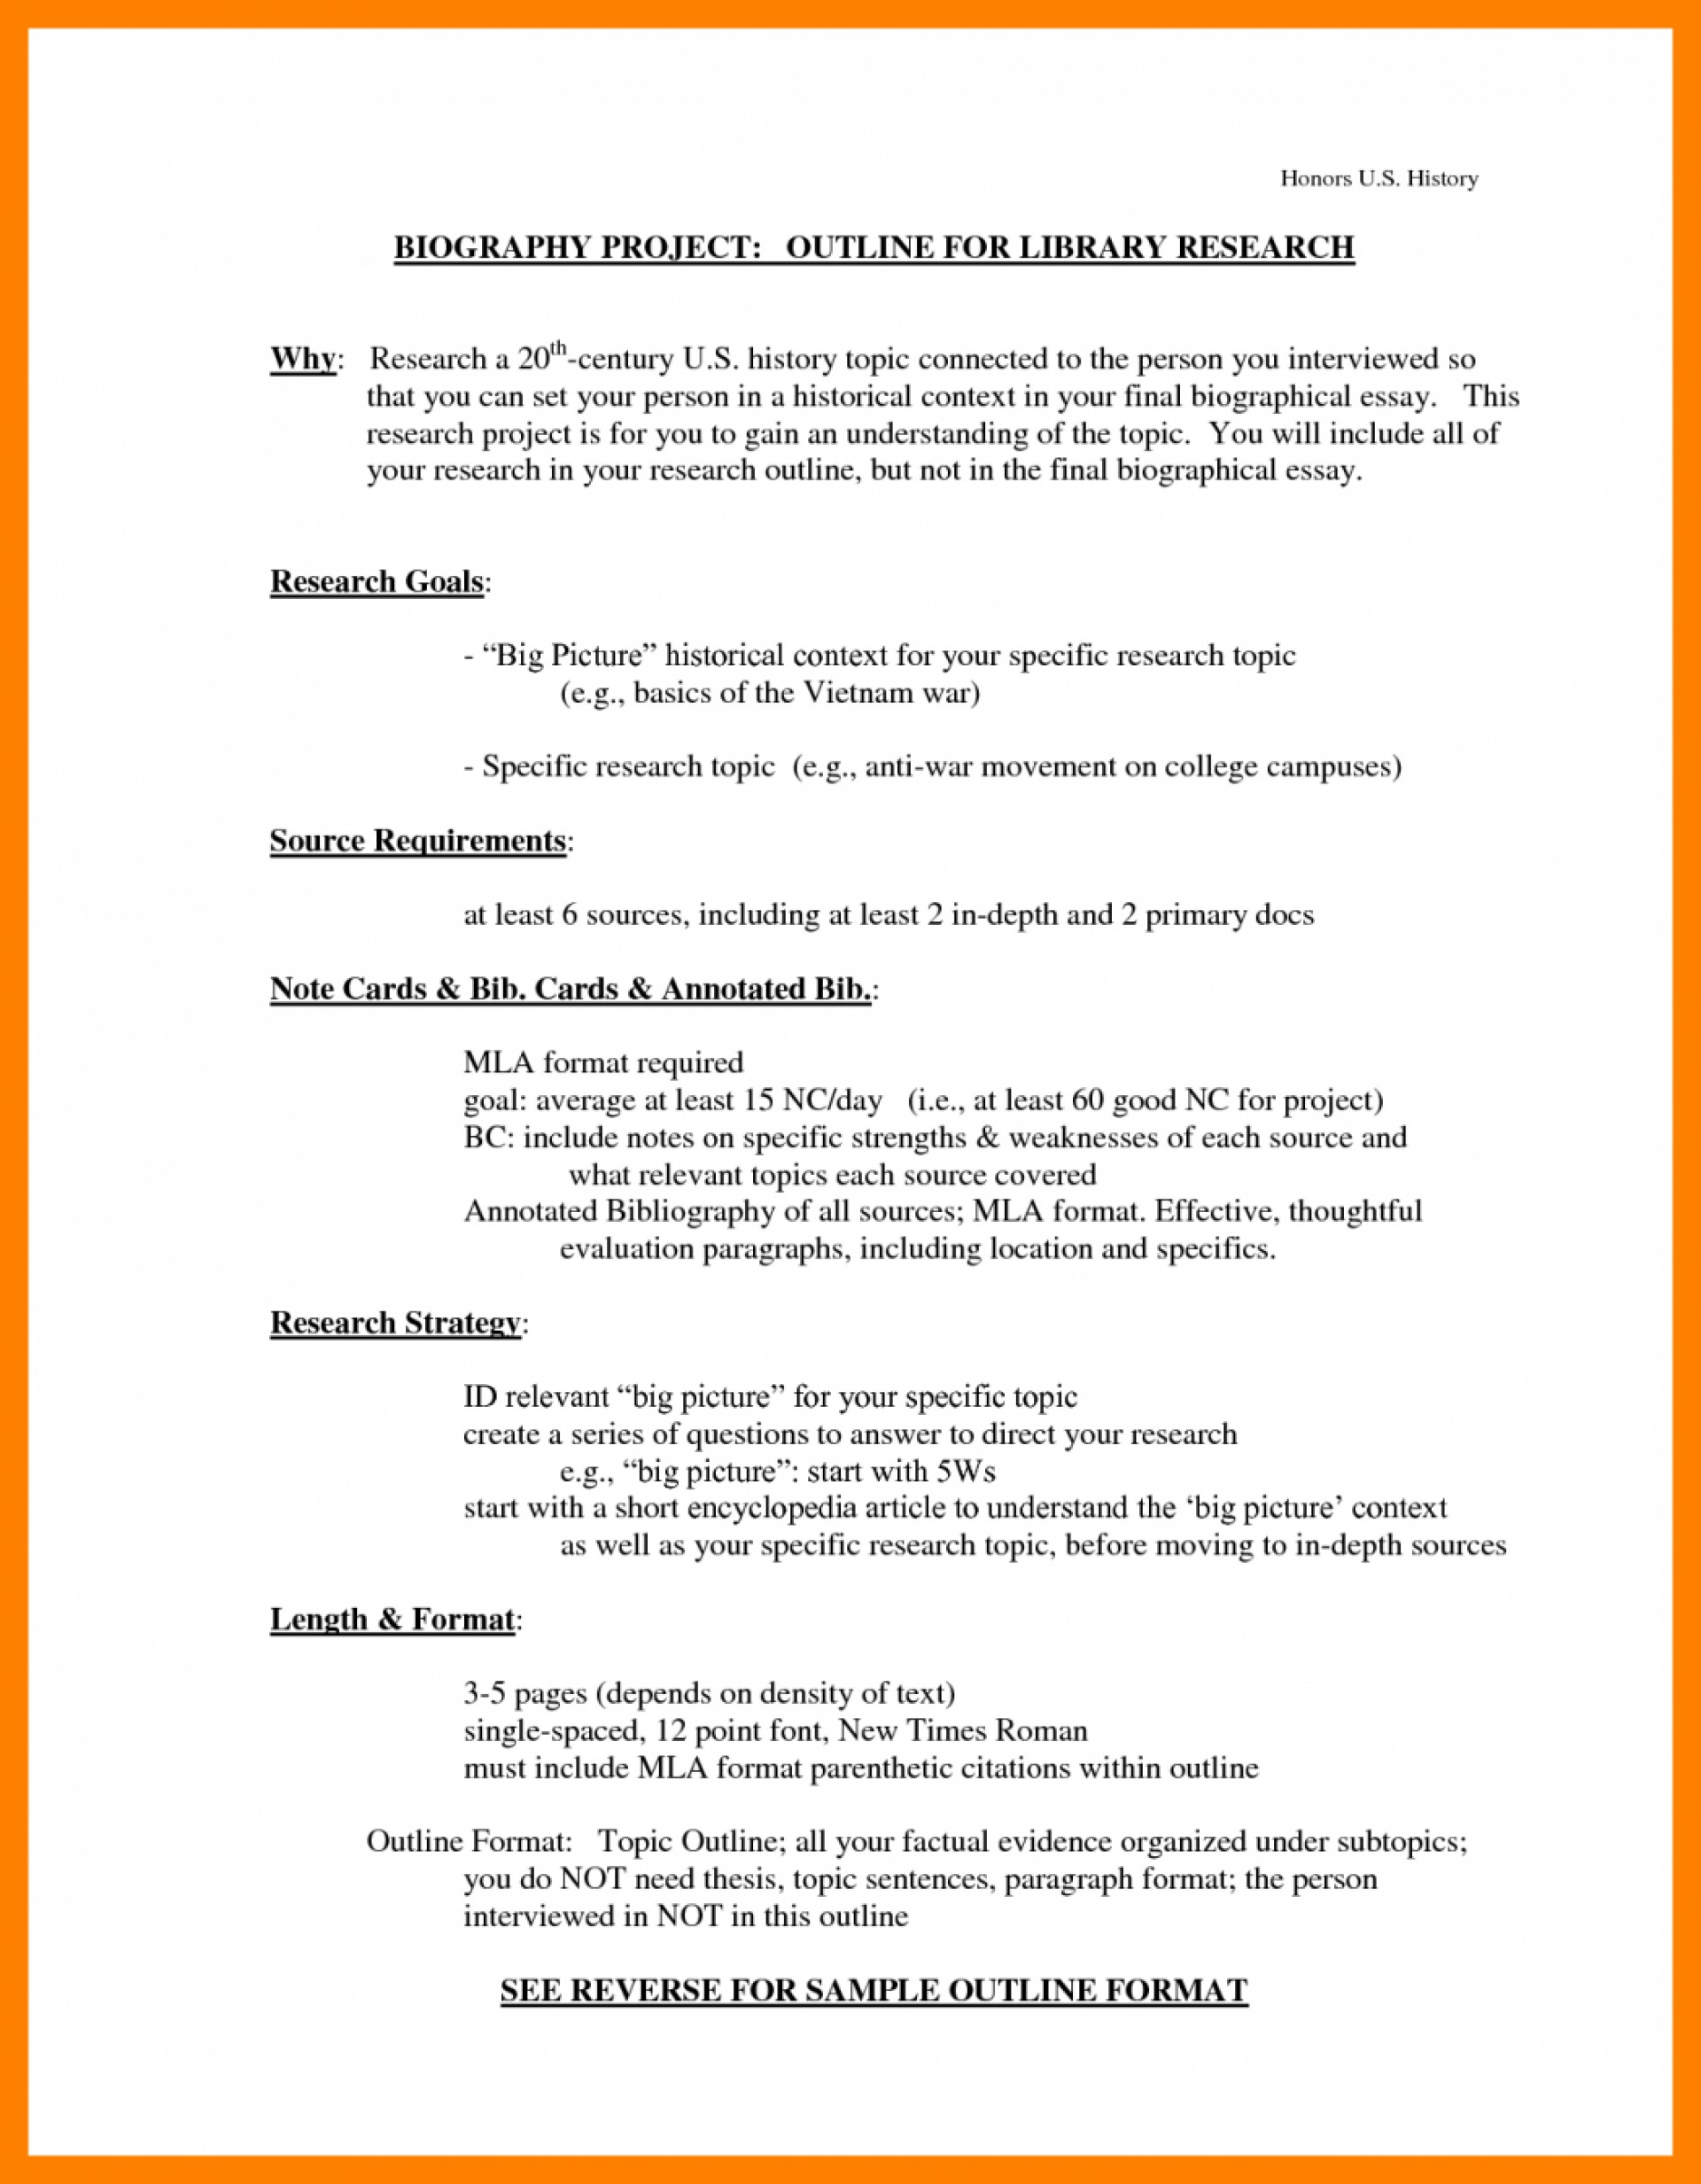 012 Biographical Questionss Biography Research Paper Outline Fall Of Rome Essay 1048x1346 Singular Prompt 1920